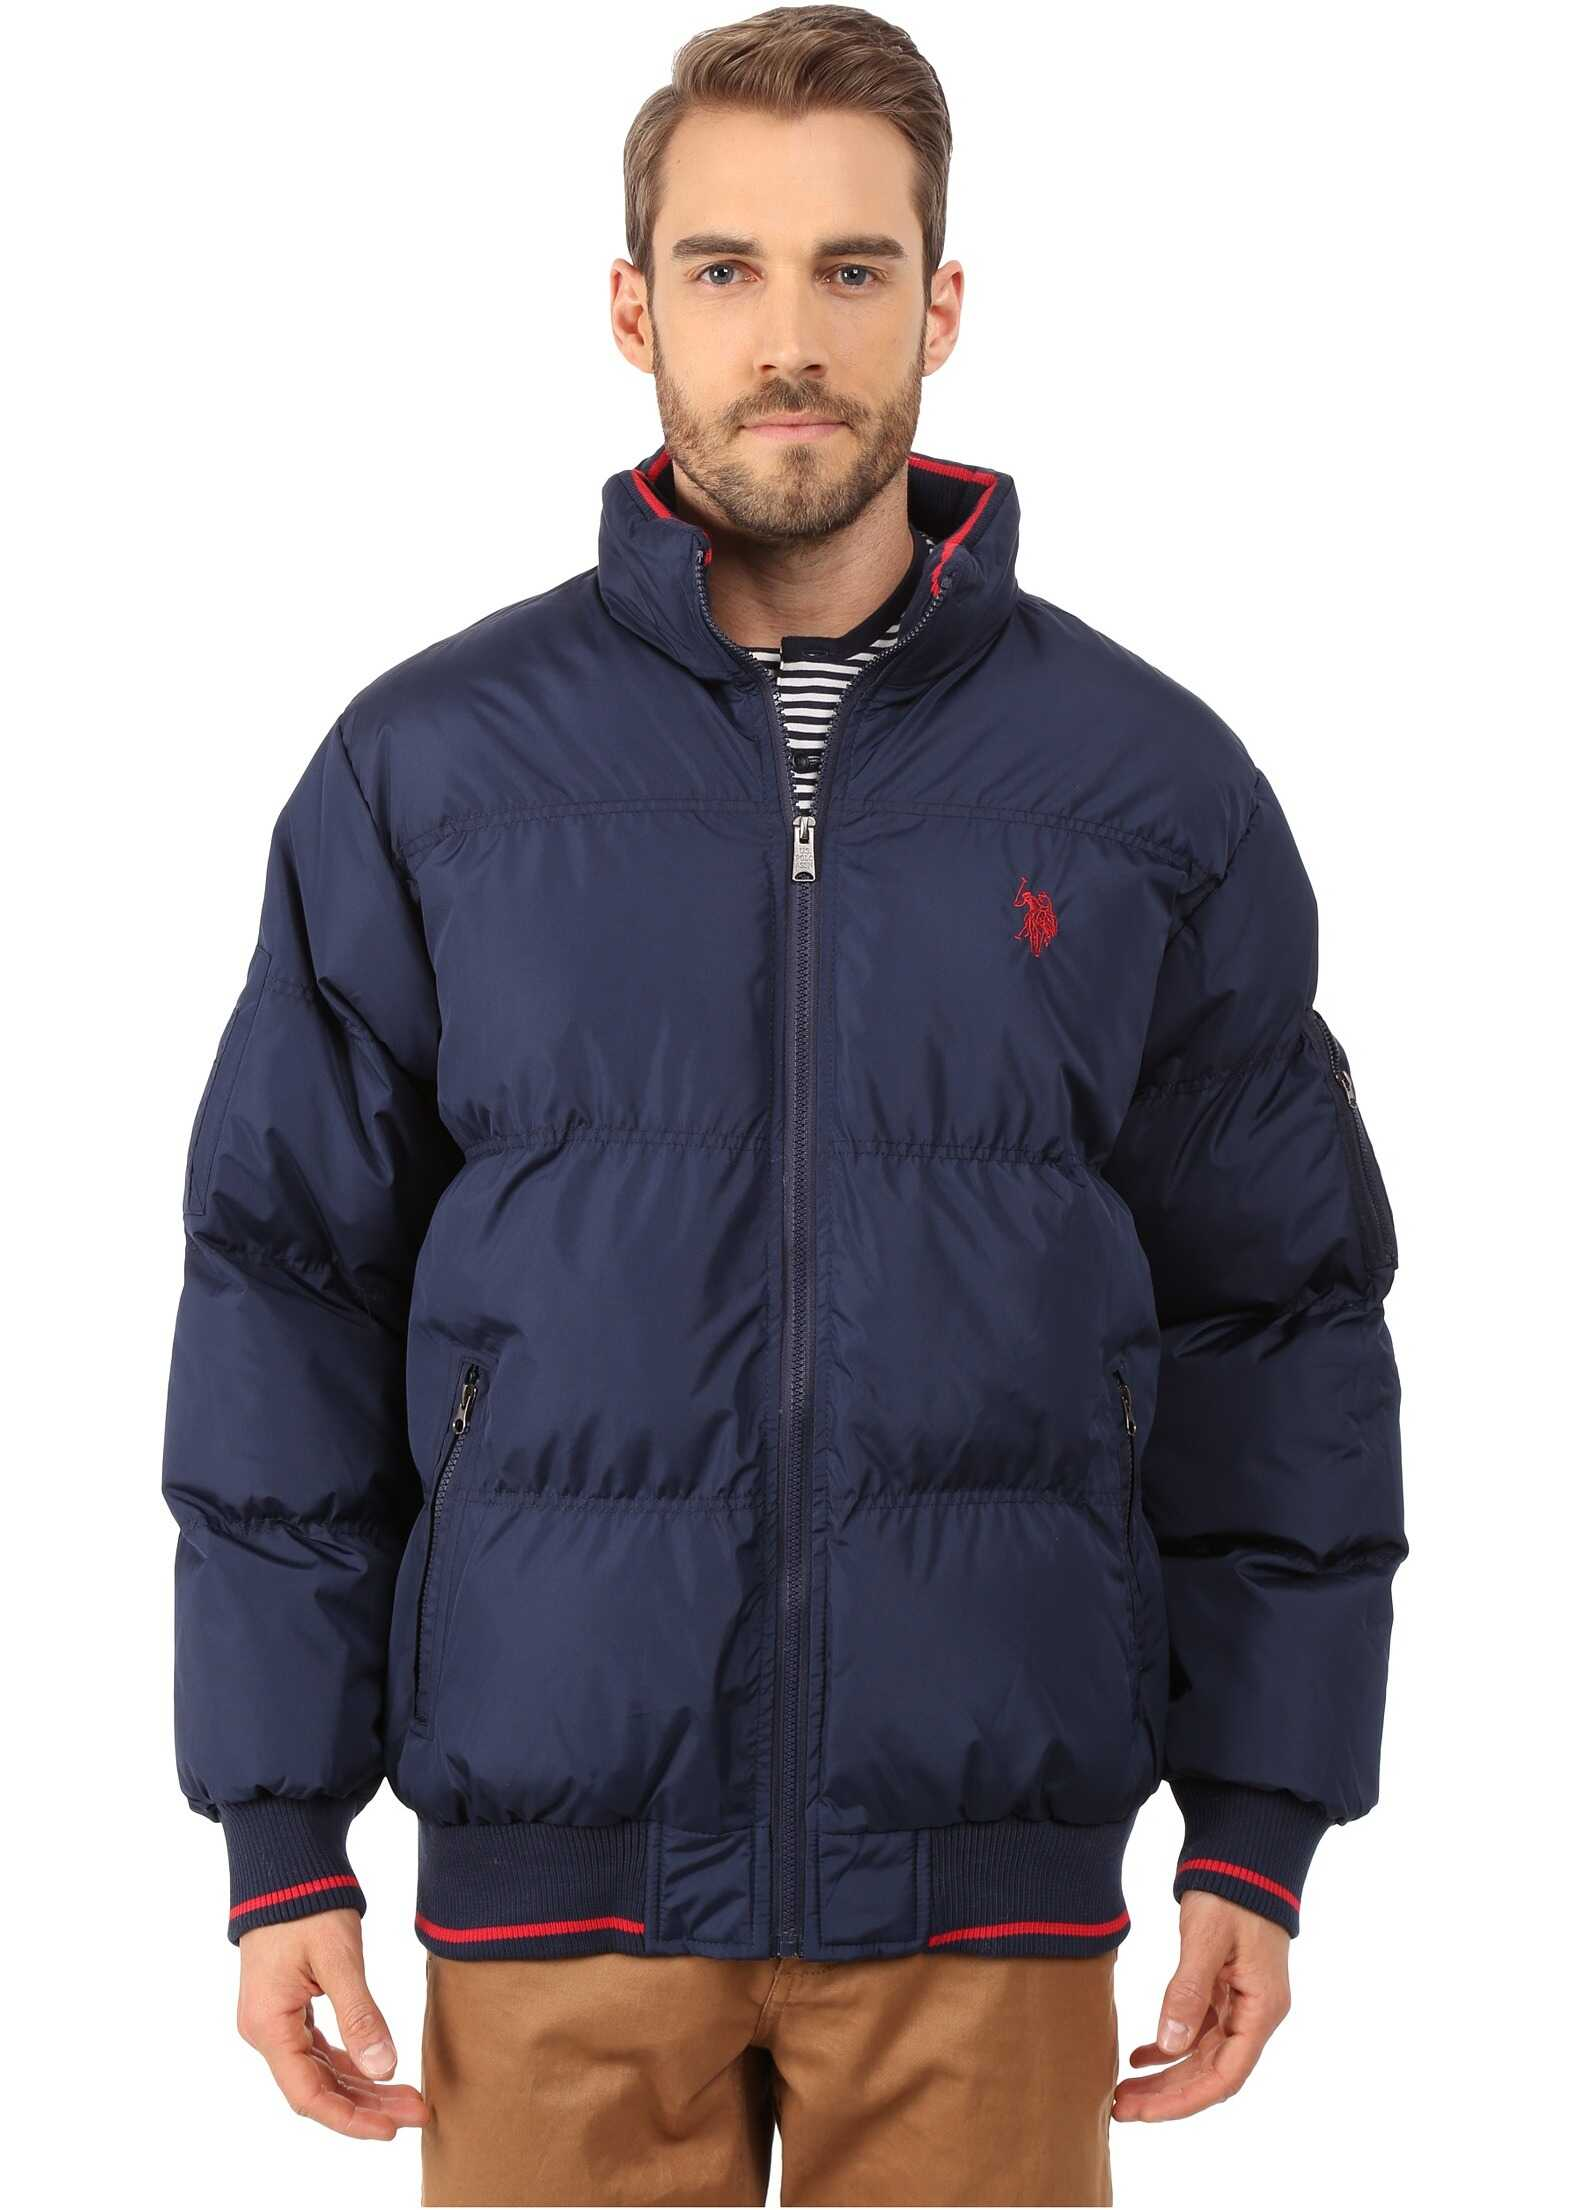 U.S. POLO ASSN. Puffer Jacket with Striped Rib Knit Collar Navy